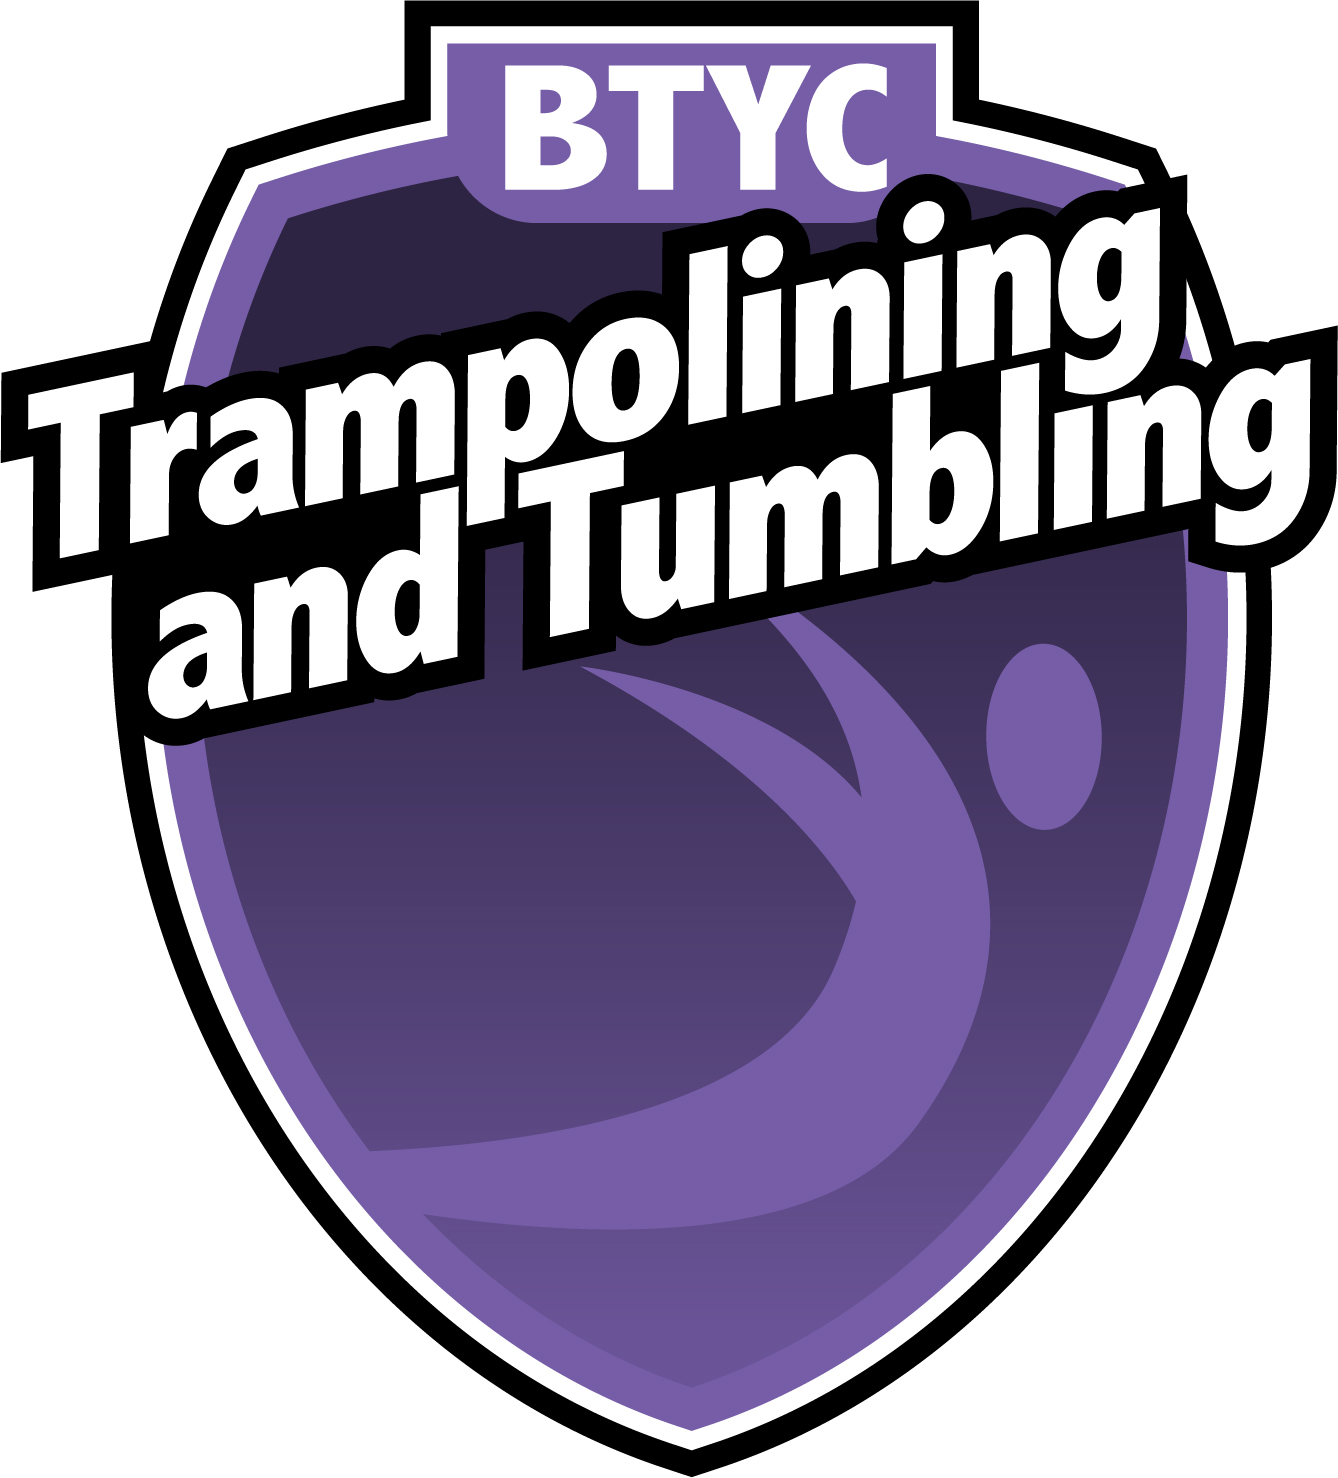 trampolining and tumbling at btyc